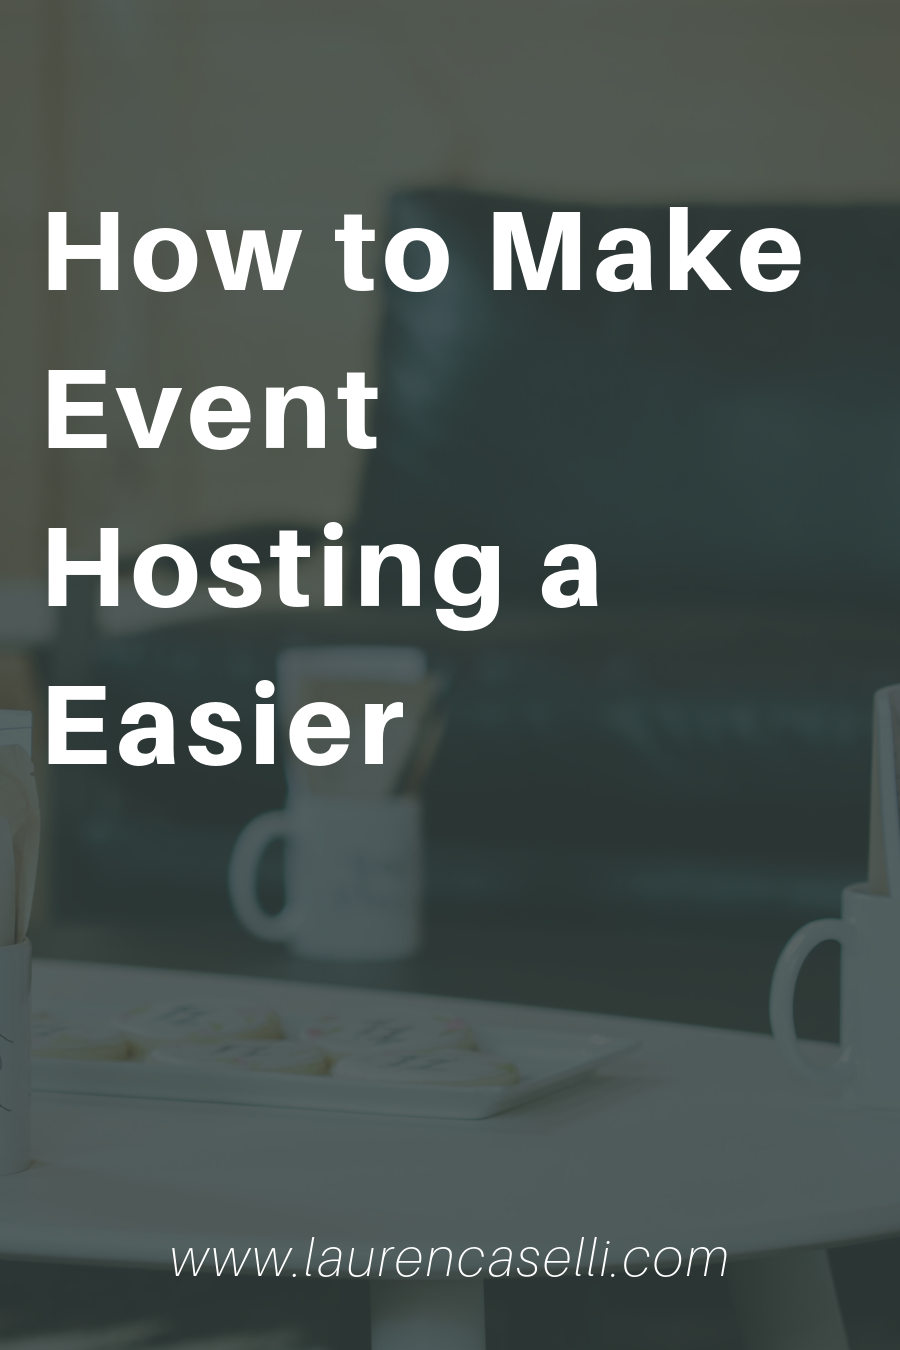 Hosting events can be draining, especially when you're marketing, planning…all the things! Here are some tips to take some of the legwork out of it.